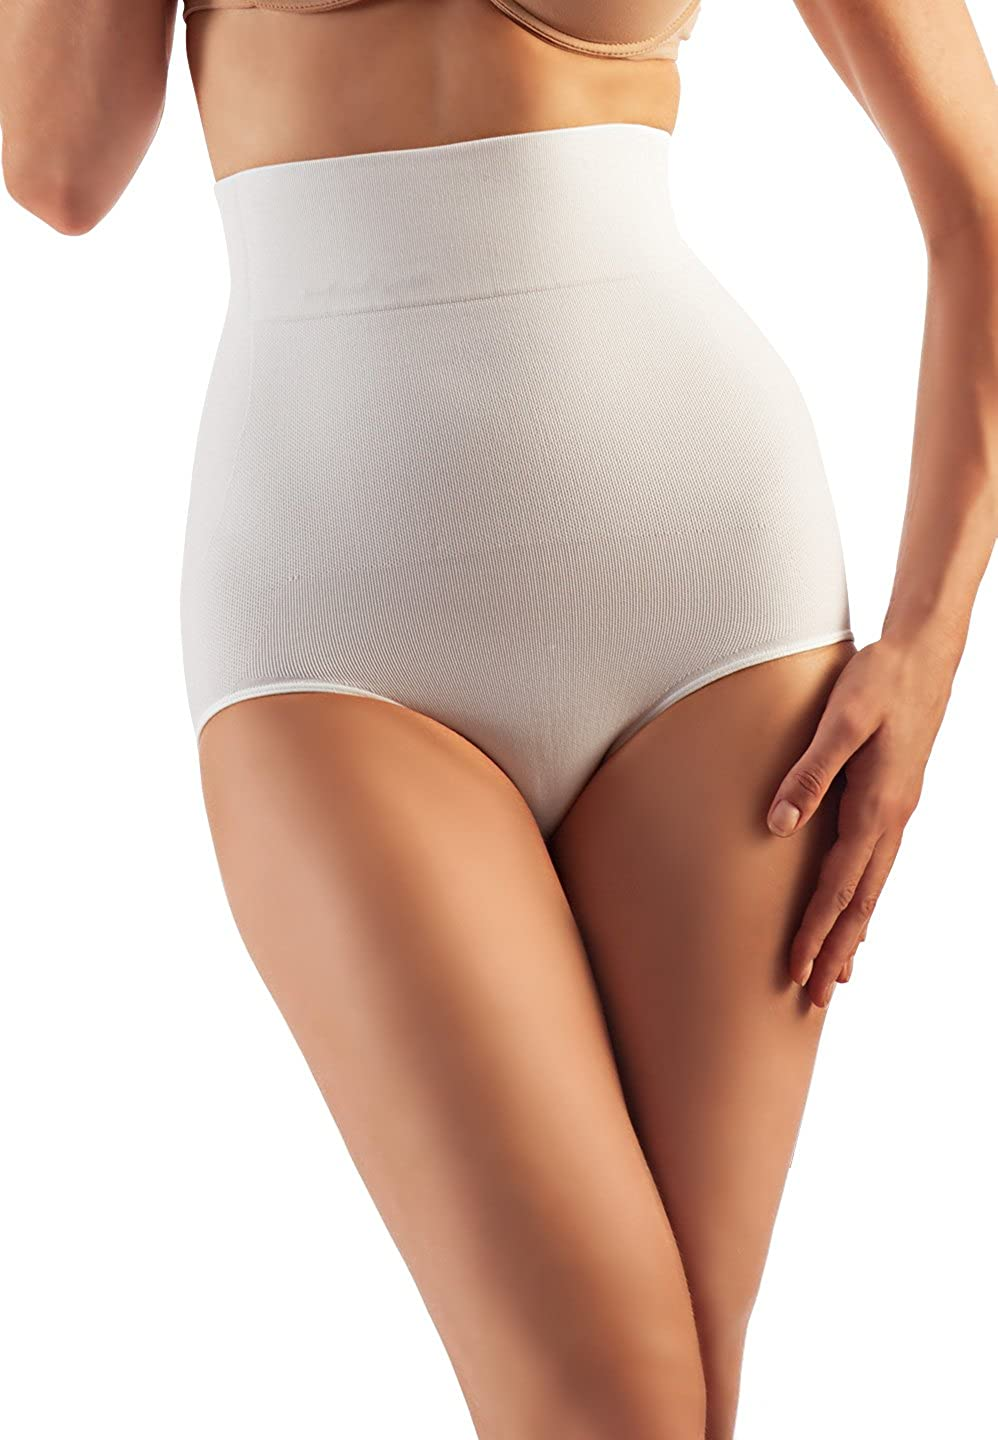 Farmacell Shape Cotton 611 High-Waisted Shaping Control Briefs Belly Control Effect Calze G.T. S.r.l.